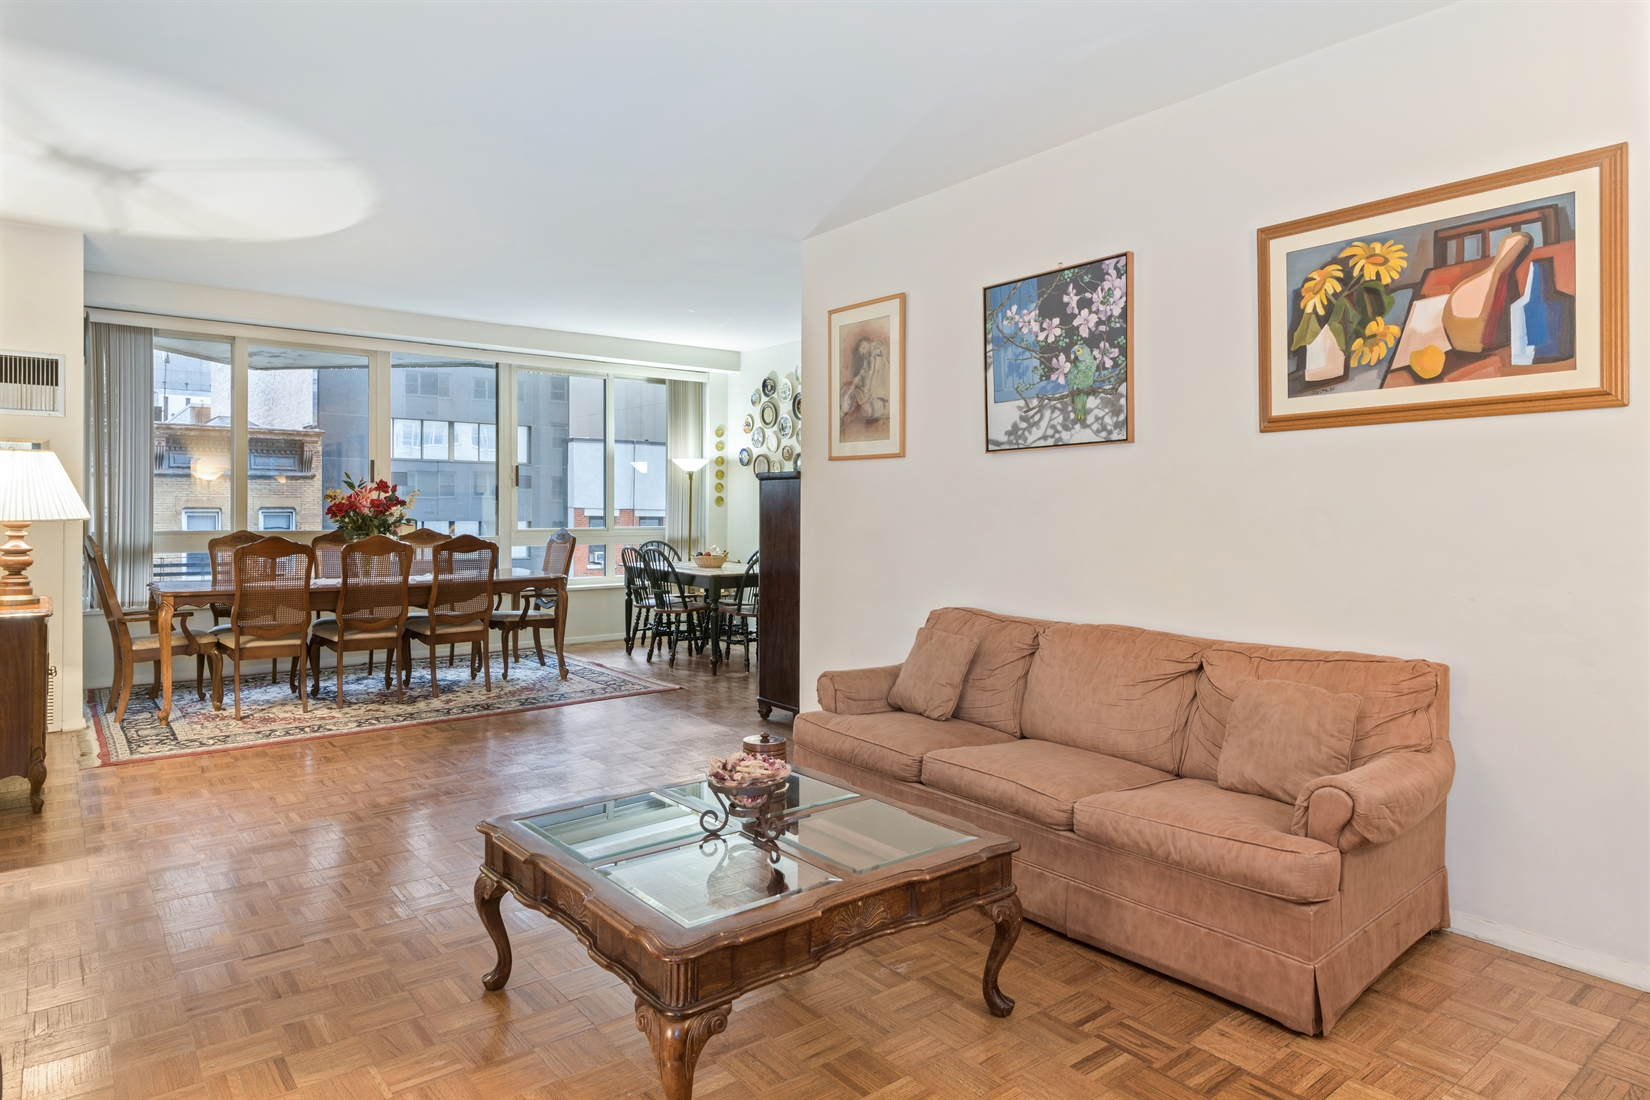 Fantastic buying opportunity for this 2 bedroom, 2.5 bathroom apartment at 100 United Nations Plaza, one of Midtown East's premier white-glove condominium buildings.Measuring approximately 1,321 square feet, unit 6E is ready for your personal touch. Representing an incredible value, this wonderful home features a sizeable living room and dining alcove, windowed kitchen and two bedrooms, each with its own en suite bathroom. The living and dining room will effortlessly accommodate multiple seating arrangements and dining for at least 8 people. This flexible and spacious layout is ideal for day-to-day living and large enough for hosting intimate gatherings at home. The windowed kitchen has a Sub Zero refrigerator and dishwasher, along with ample counter and storage space.The north-facing primary bedroom suite is pin-drop quiet and has an en suite marble bathroom with whirlpool bathtub with an extra-wide vanity. There is also a large walk-in closet. Equally as spacious is the south-facing second bedroom with a large floor-to-ceiling closet and an en suite marble bathroom with soaking bathtub. Additional features include oversized windows, central heat and A/C, and a guest powder room.Located on East 48th Street and First Avenue, 100 United Nations Plaza is a white-glove, full service condominium in Manhattan's Turtle Bay neighborhood. Greeting residents with beautifully landscaped gardens and waterfalls, this impeccably run building offers a 24-hour doorman, valet and concierge service, on-site management office, renovated lobby and resident's lounge, common laundry room, fitness center and direct access to a 24-hour attended parking garage. Conveniently located to transportation and many great shops and restaurants. Condominium application required.Showing by appointment only.